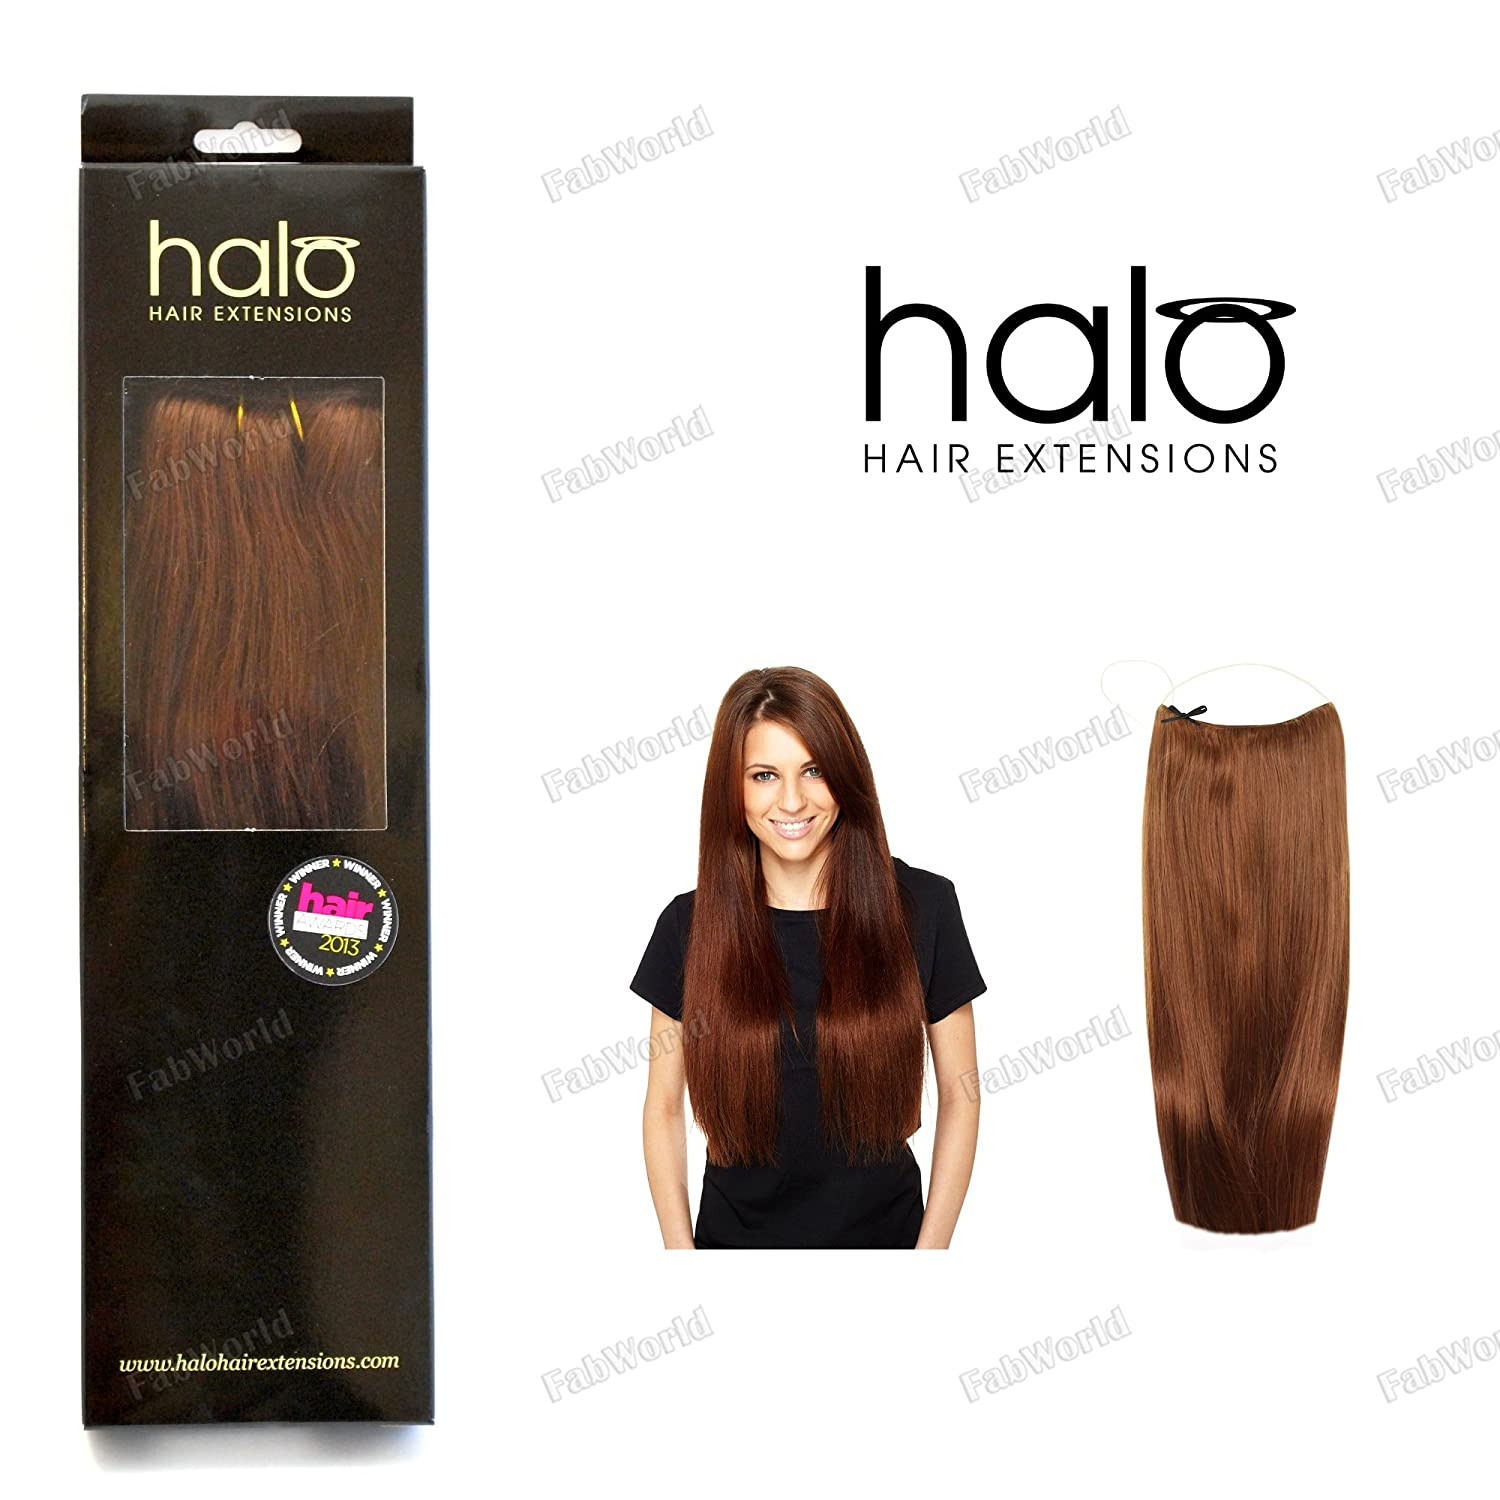 Halo hair extensions the halo piece 16 colour 2 dark brown halo hair extensions the halo piece 16 colour 2 dark brown amazon beauty pmusecretfo Choice Image